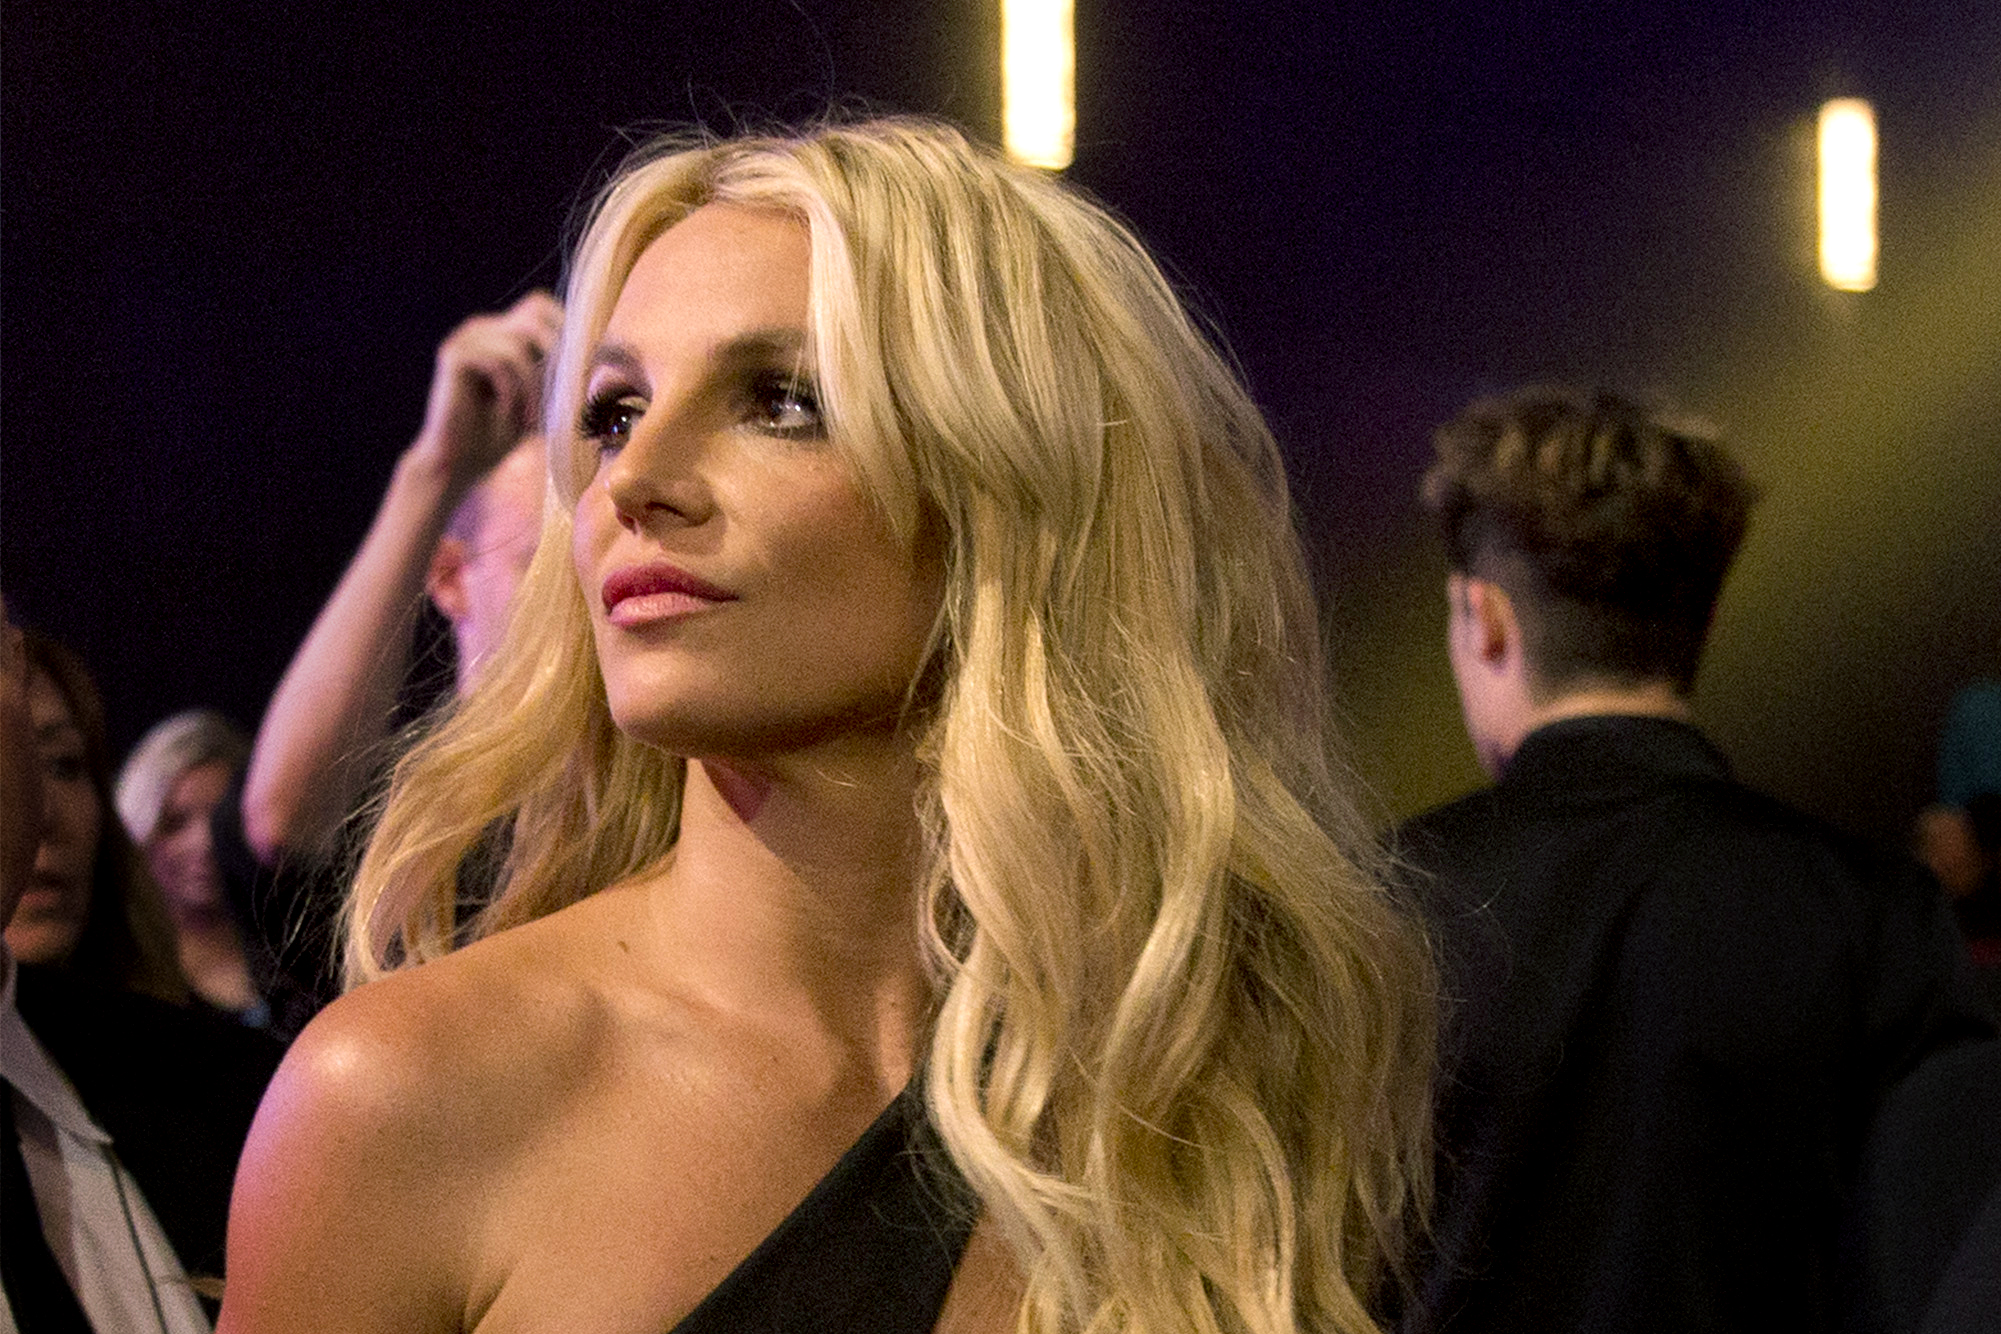 Britney Spears' co-conservator's request for resignation was approved by the court!